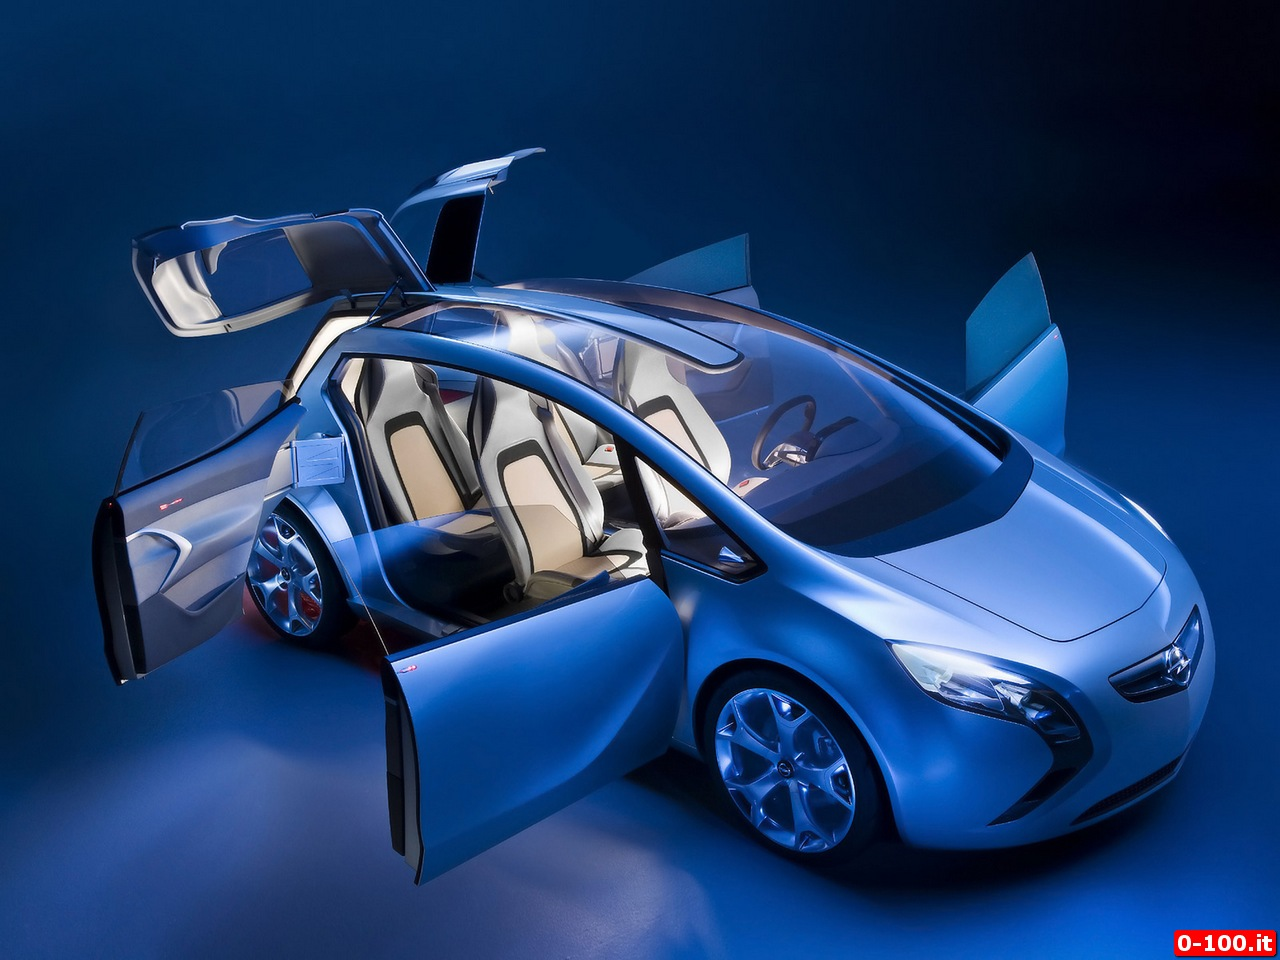 Opel_extreme_concept-0-100_1